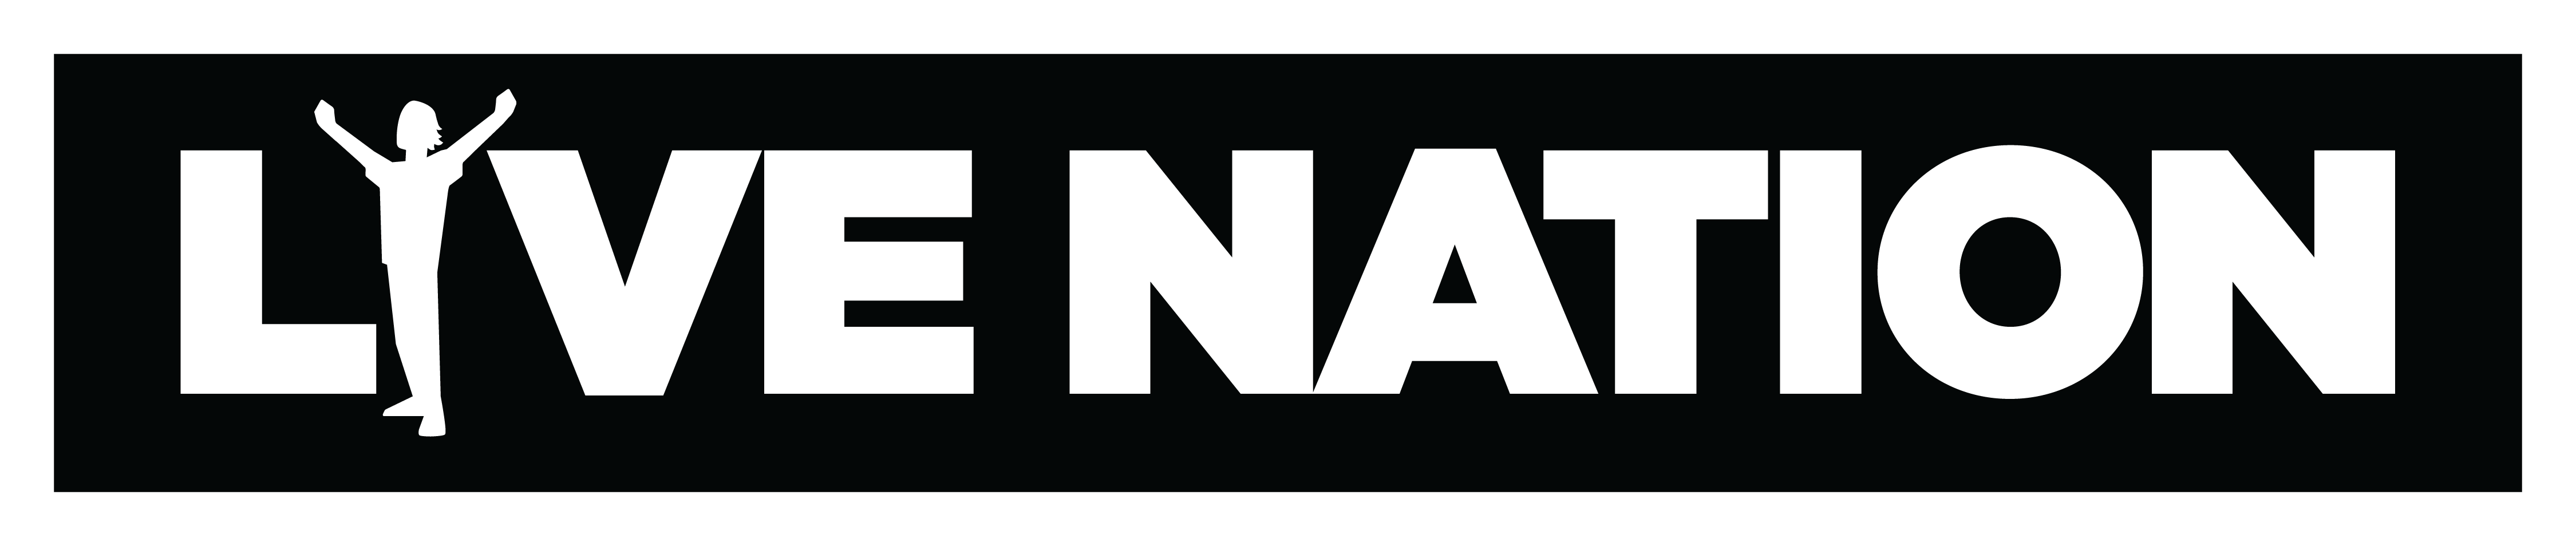 Live Nation Logo Png (95+ images in Collection) Page 2.